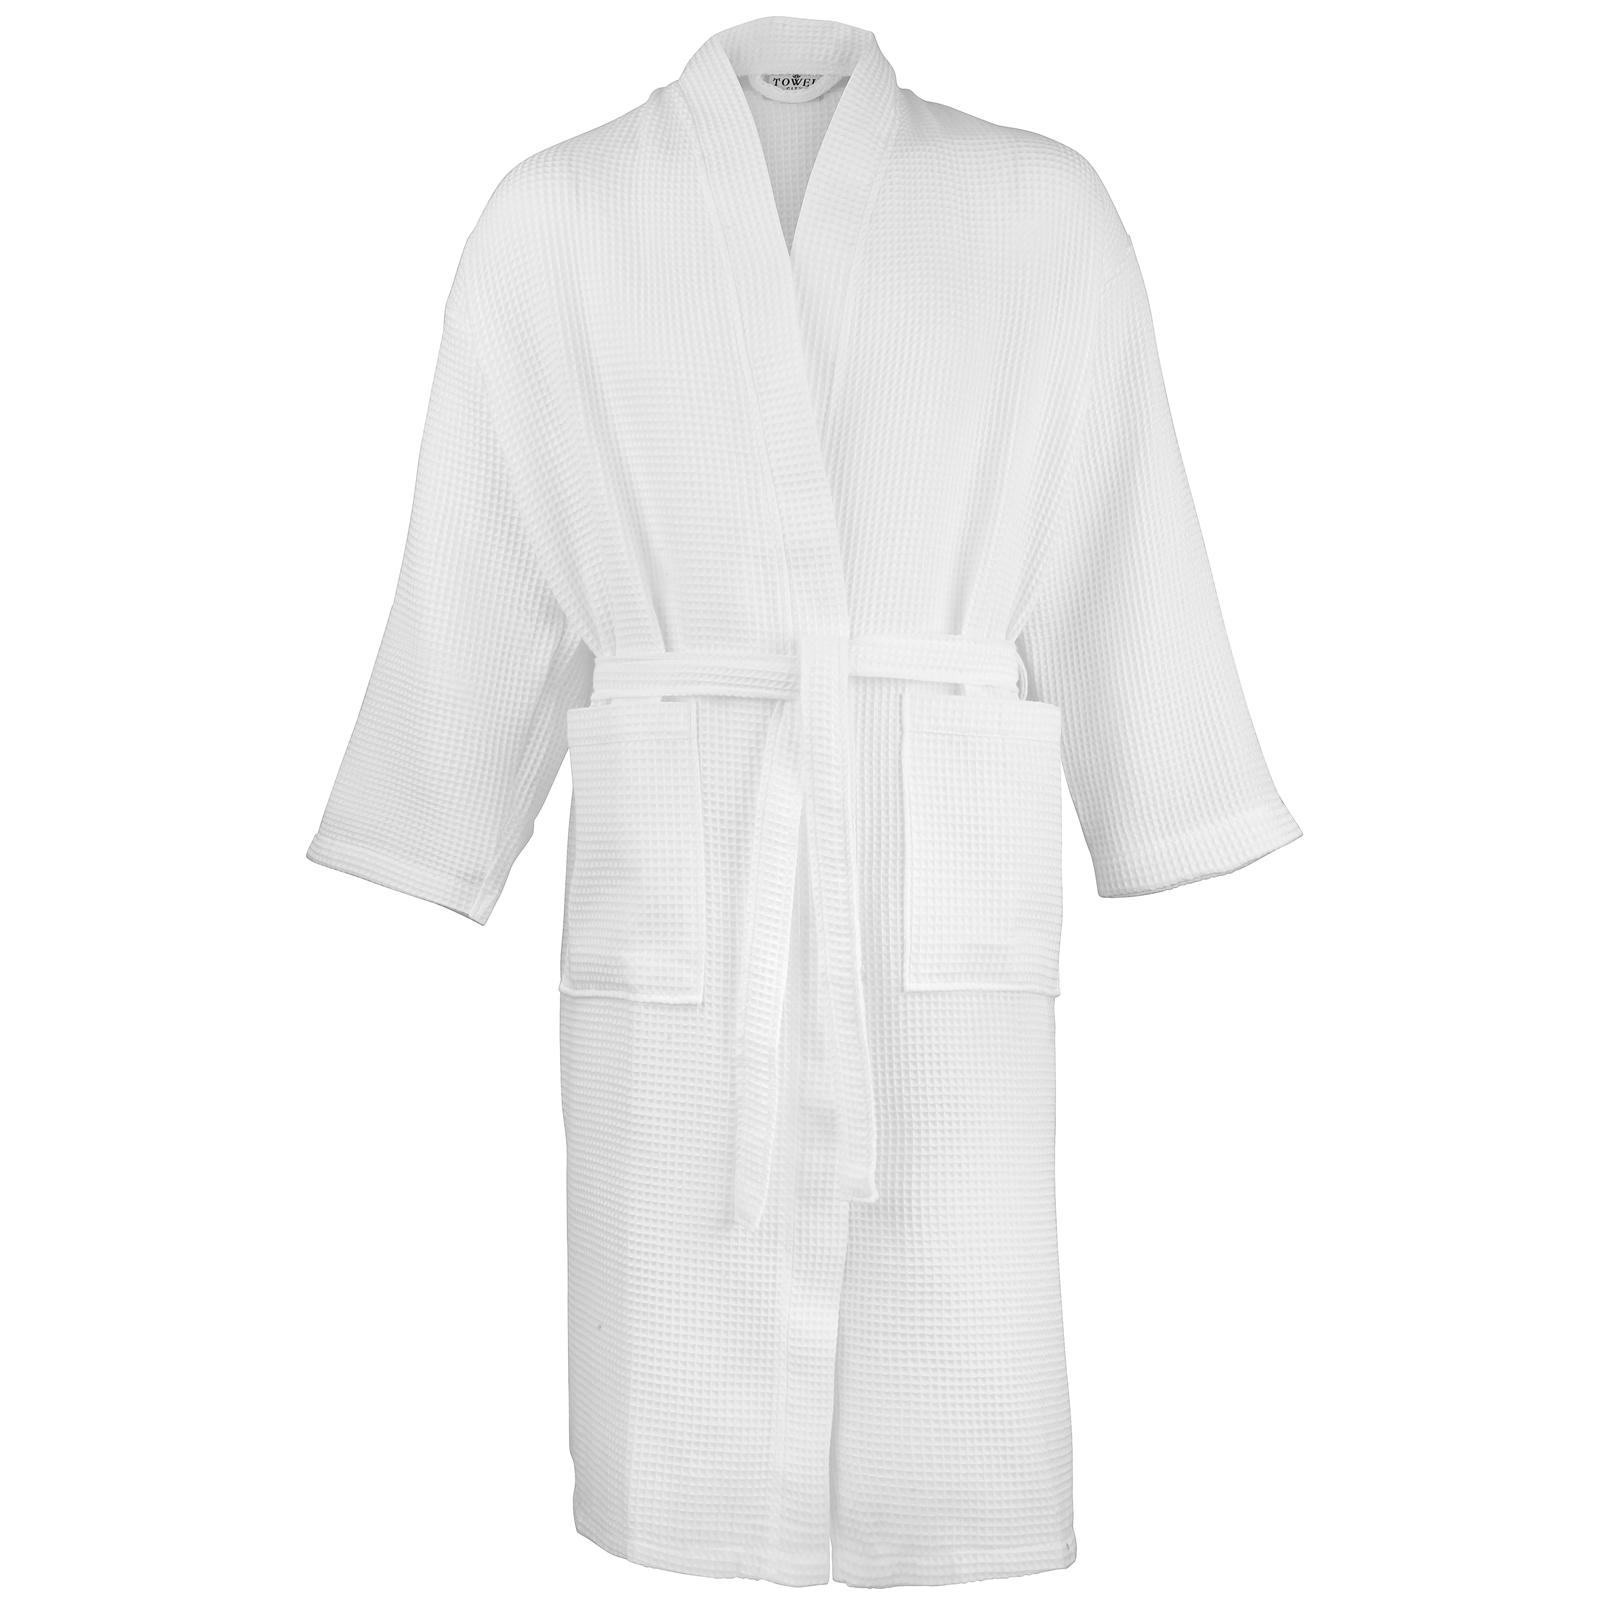 Buy Dressing gowns from the Womens department at Debenhams. You'll find the widest range of Dressing gowns products online and delivered to your door. Shop today! White towelling dressing gown Save. Was £ Then £ Now £ > Dorothy Perkins Navy plain wellsoft robe Save. Was £ Now £ J by Jasper Conran.